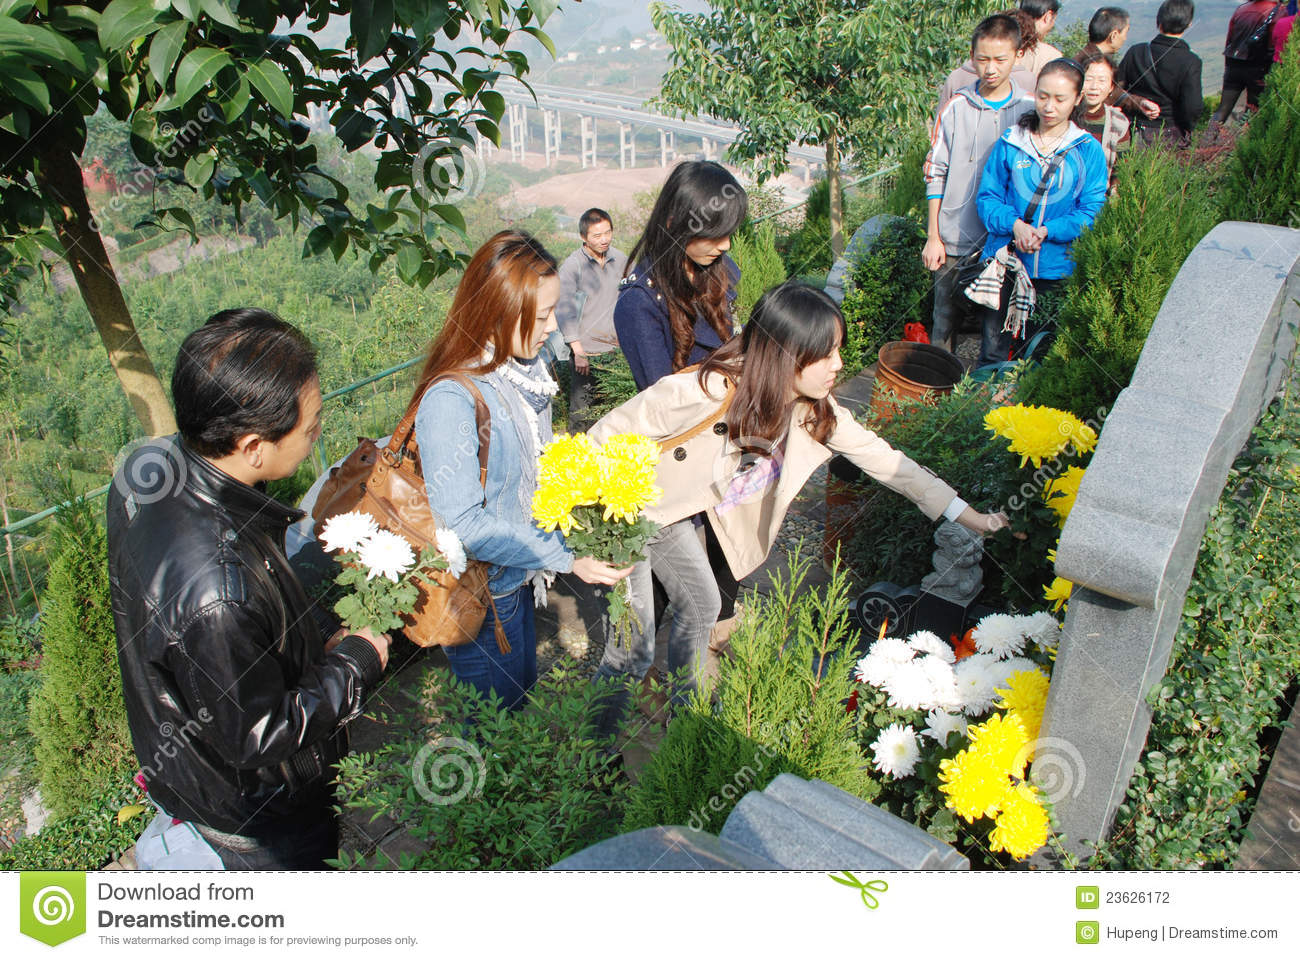 Chinese people Tomb sweeping